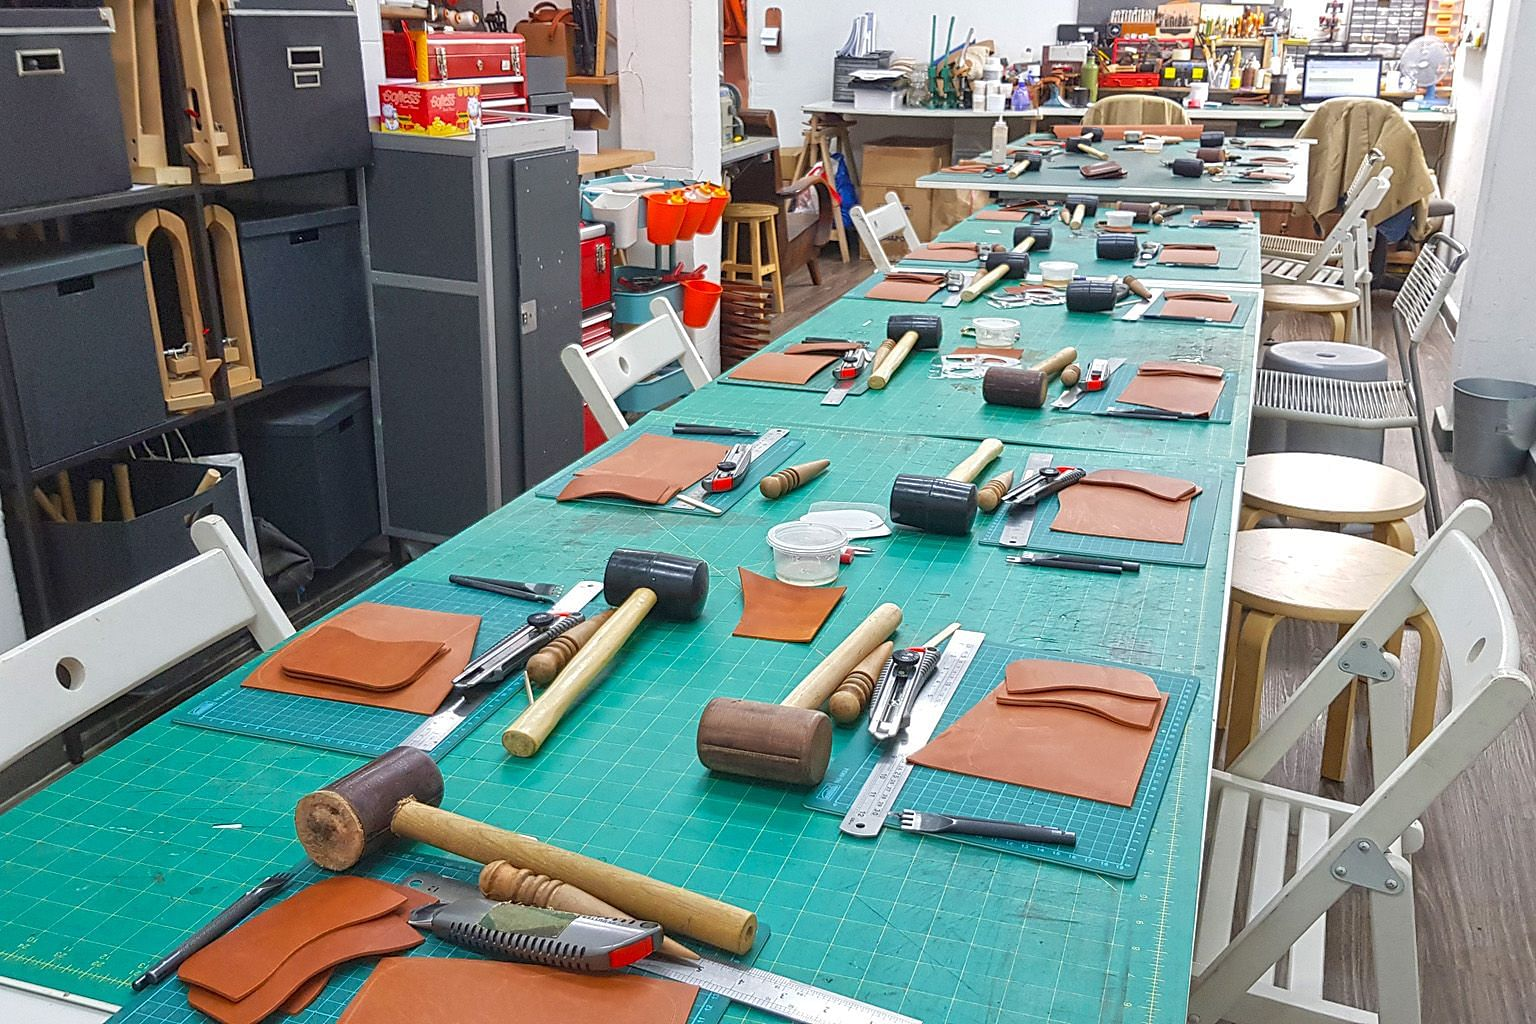 Those who sign up for the class on Dec 15 will learn to cut, assemble and hand stitch their own leather key holders.